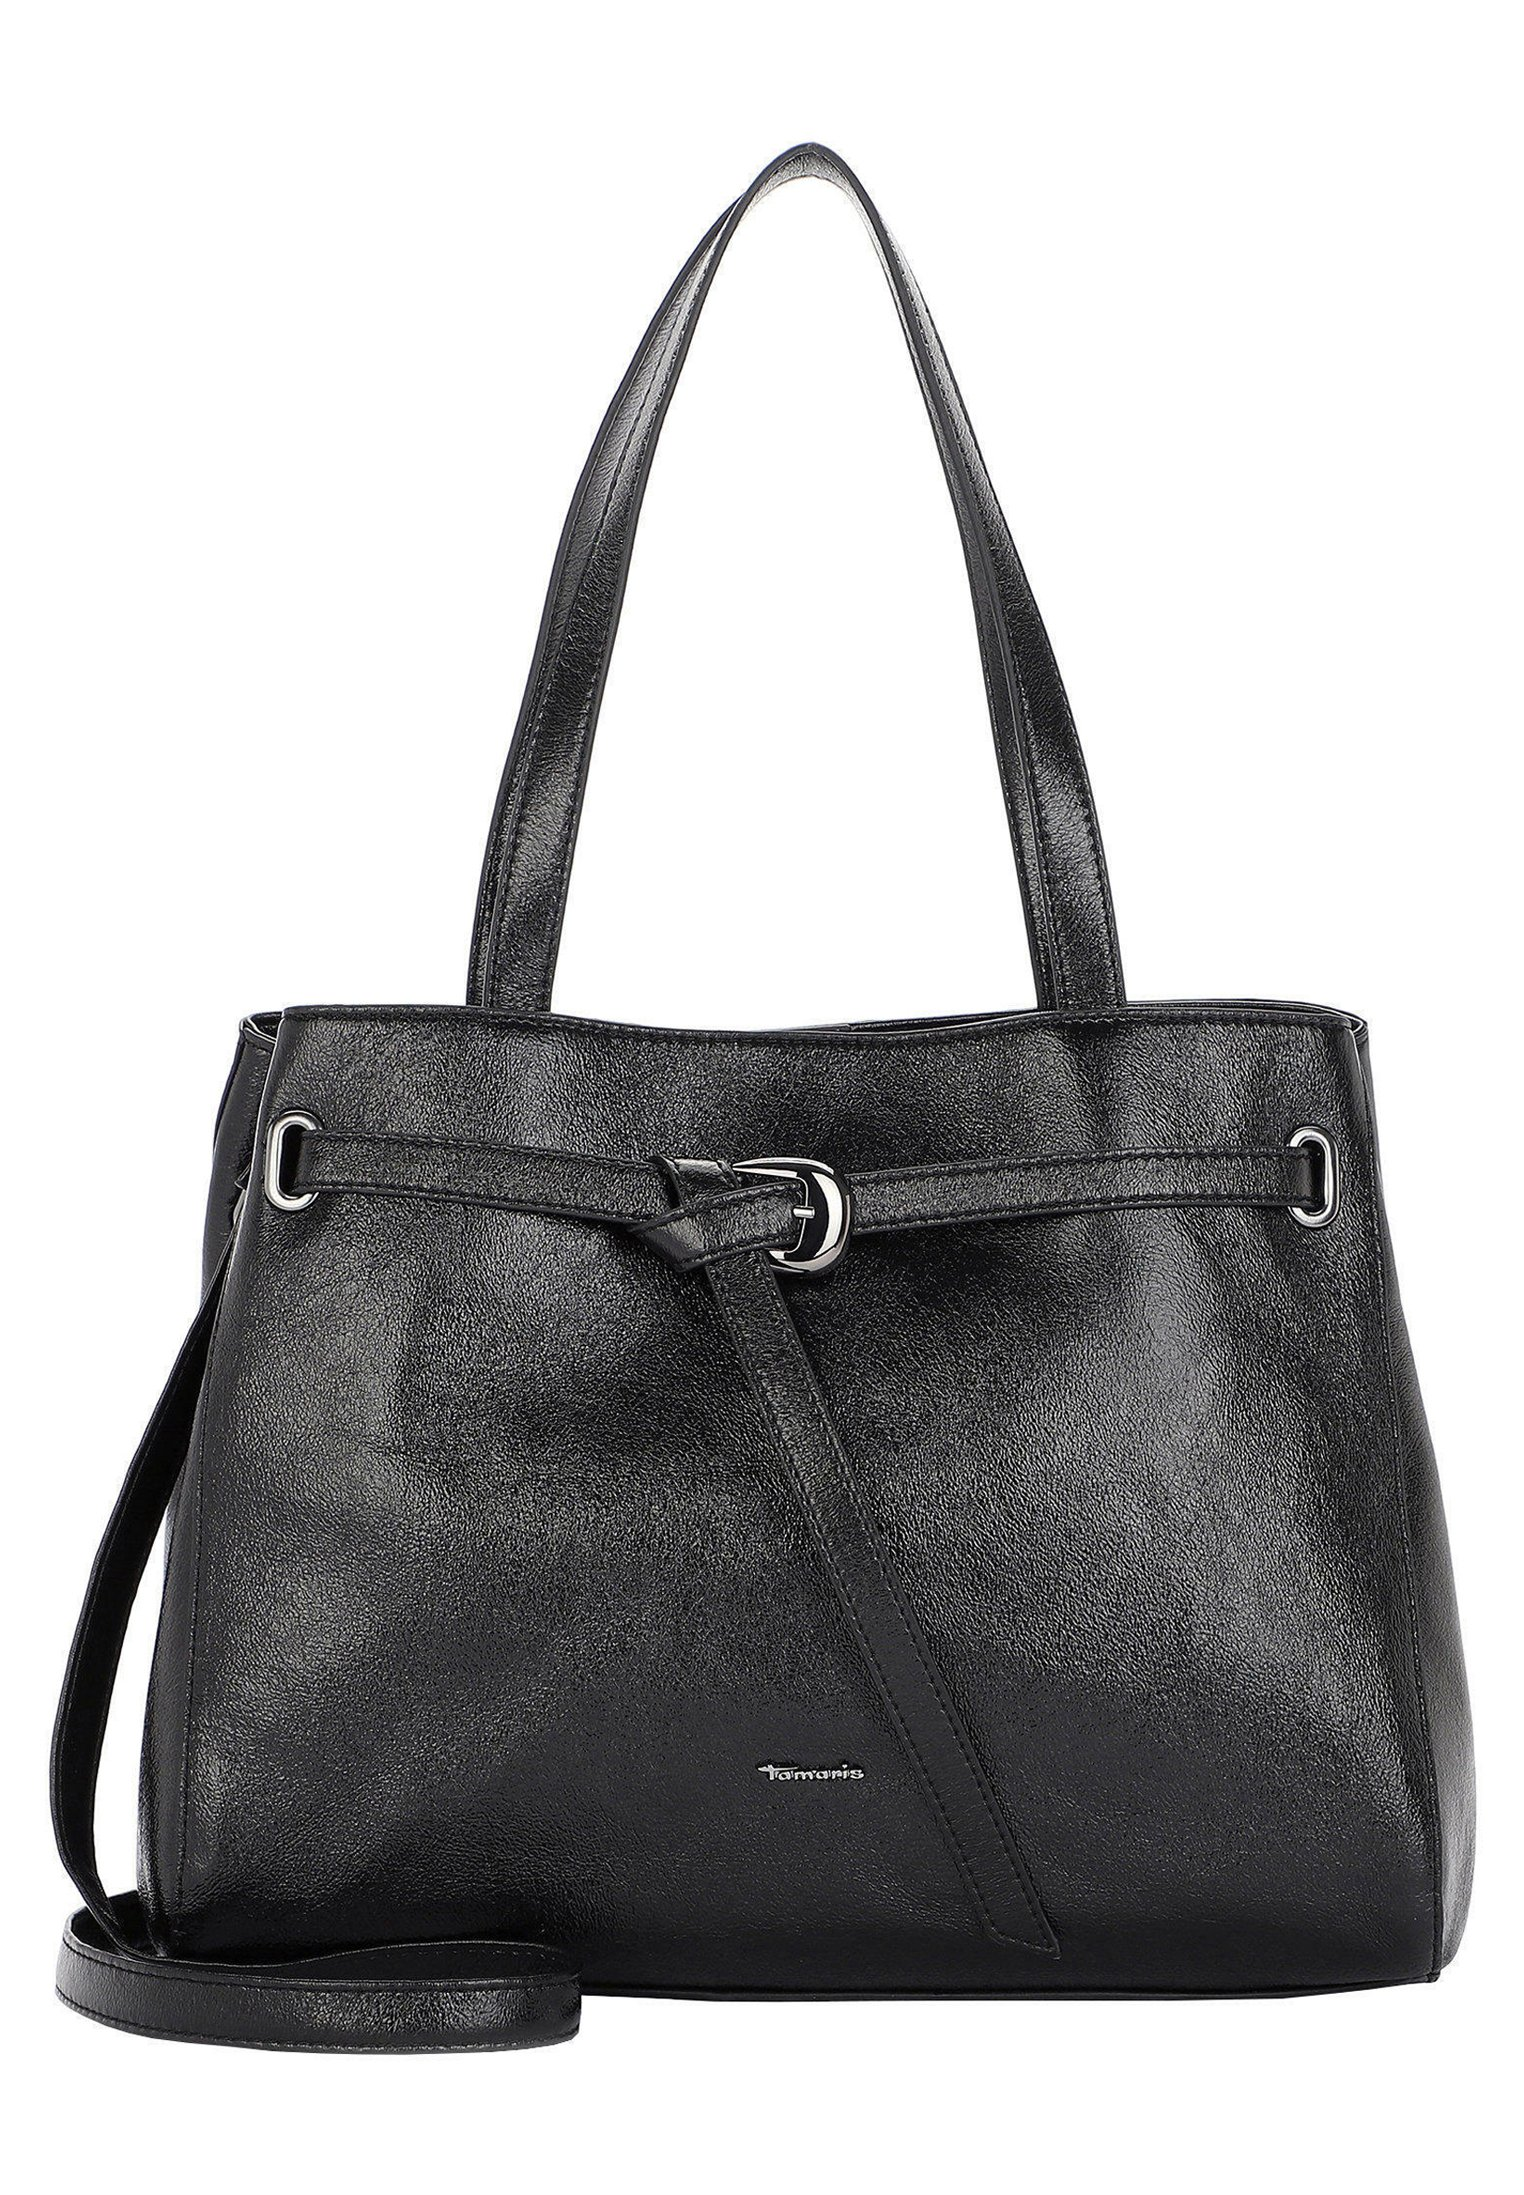 Tamaris Belinda - Shopping Bag Black/schwarz